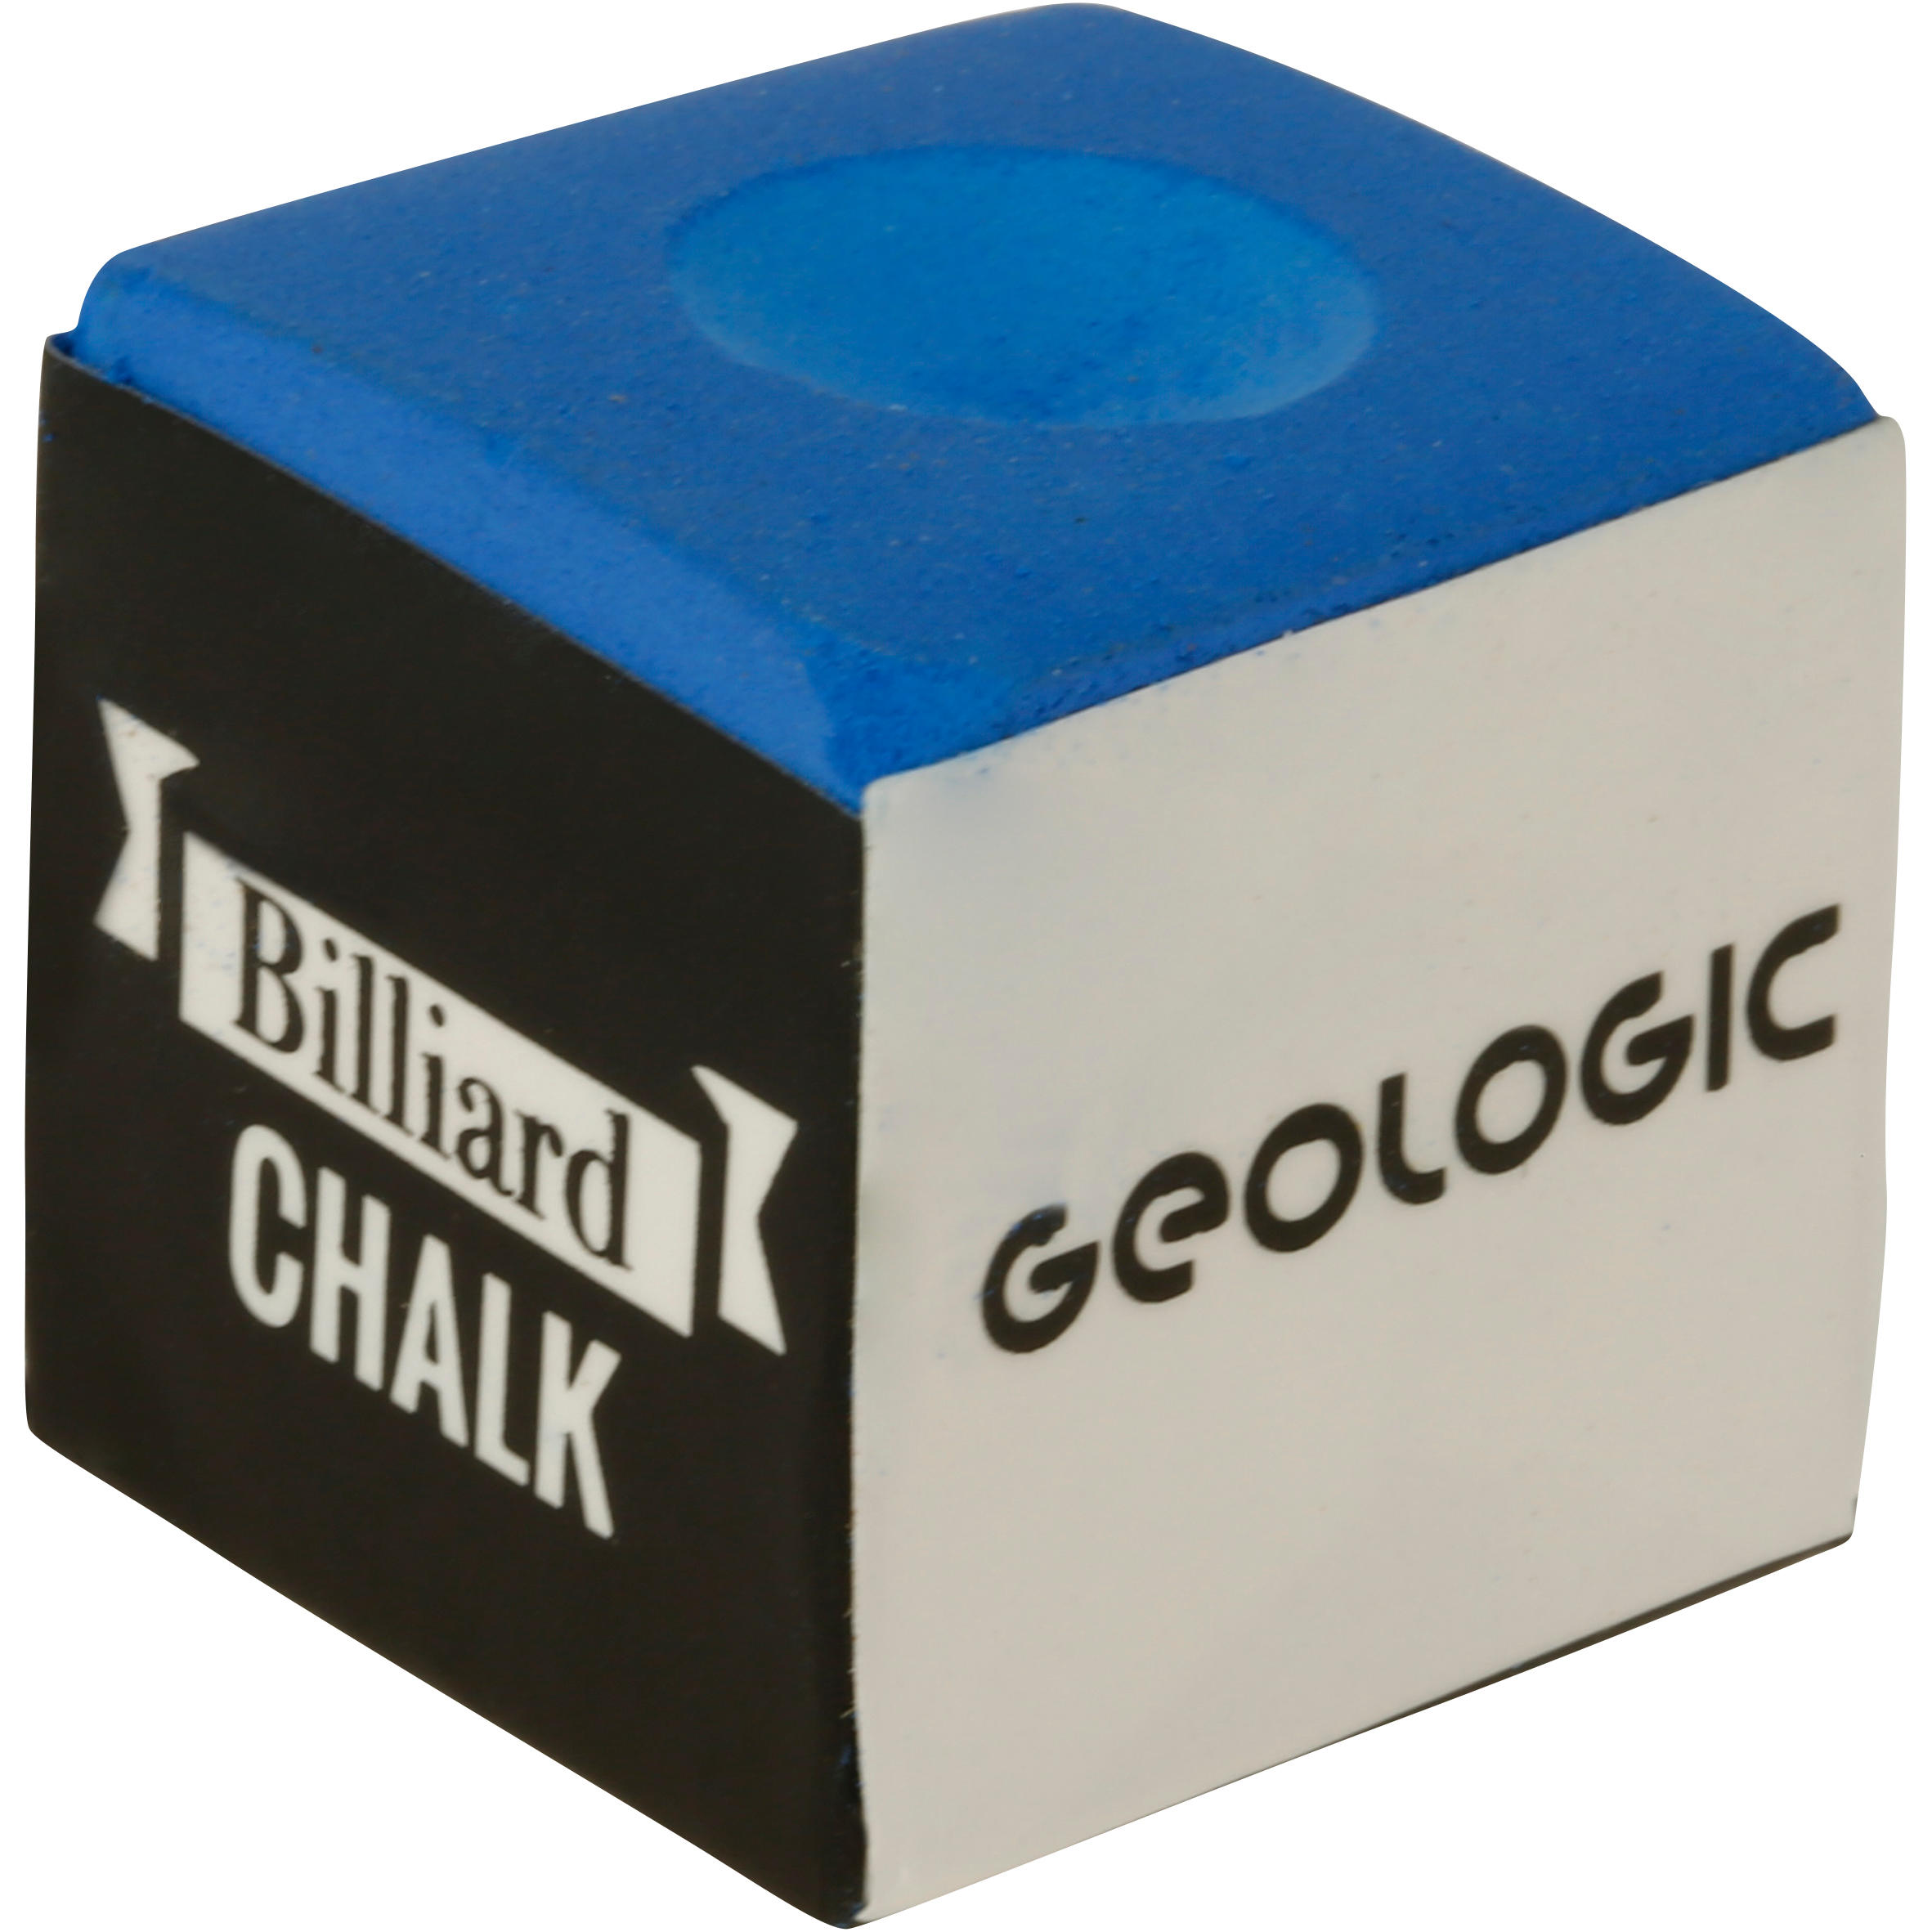 Pool Chalk - 4-Pack